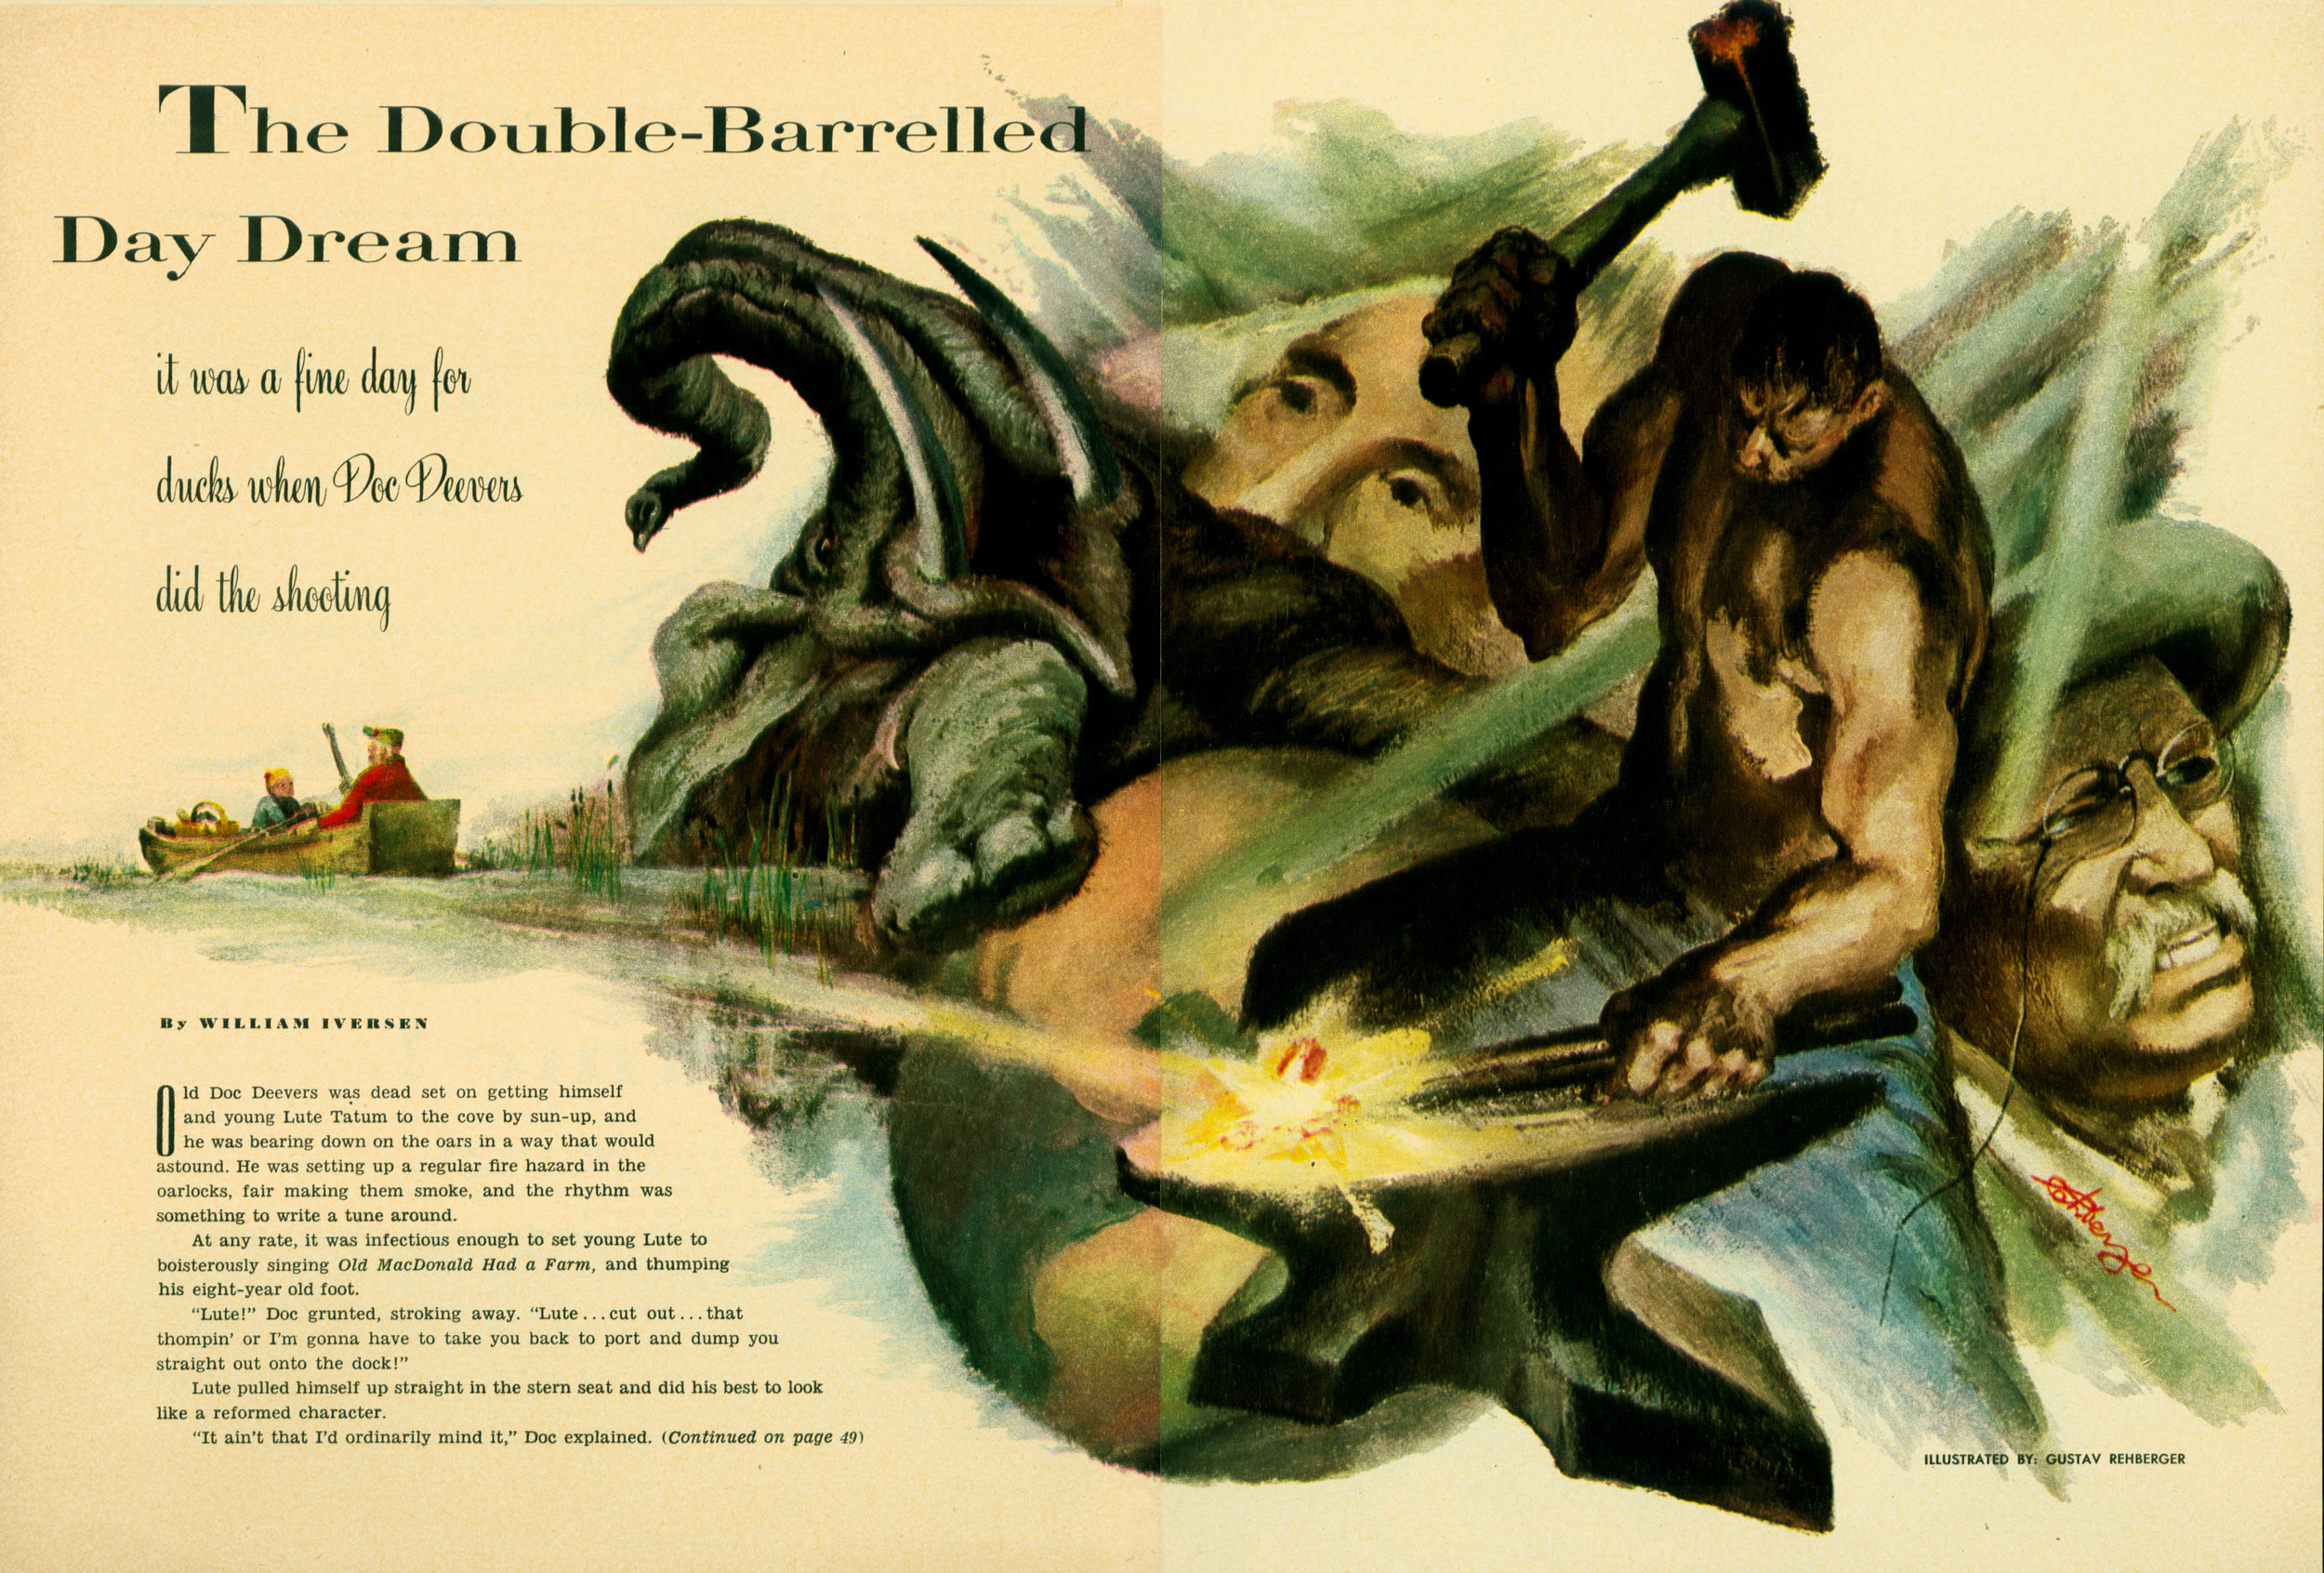 September 1952 - The Double-Barreled Day Dream